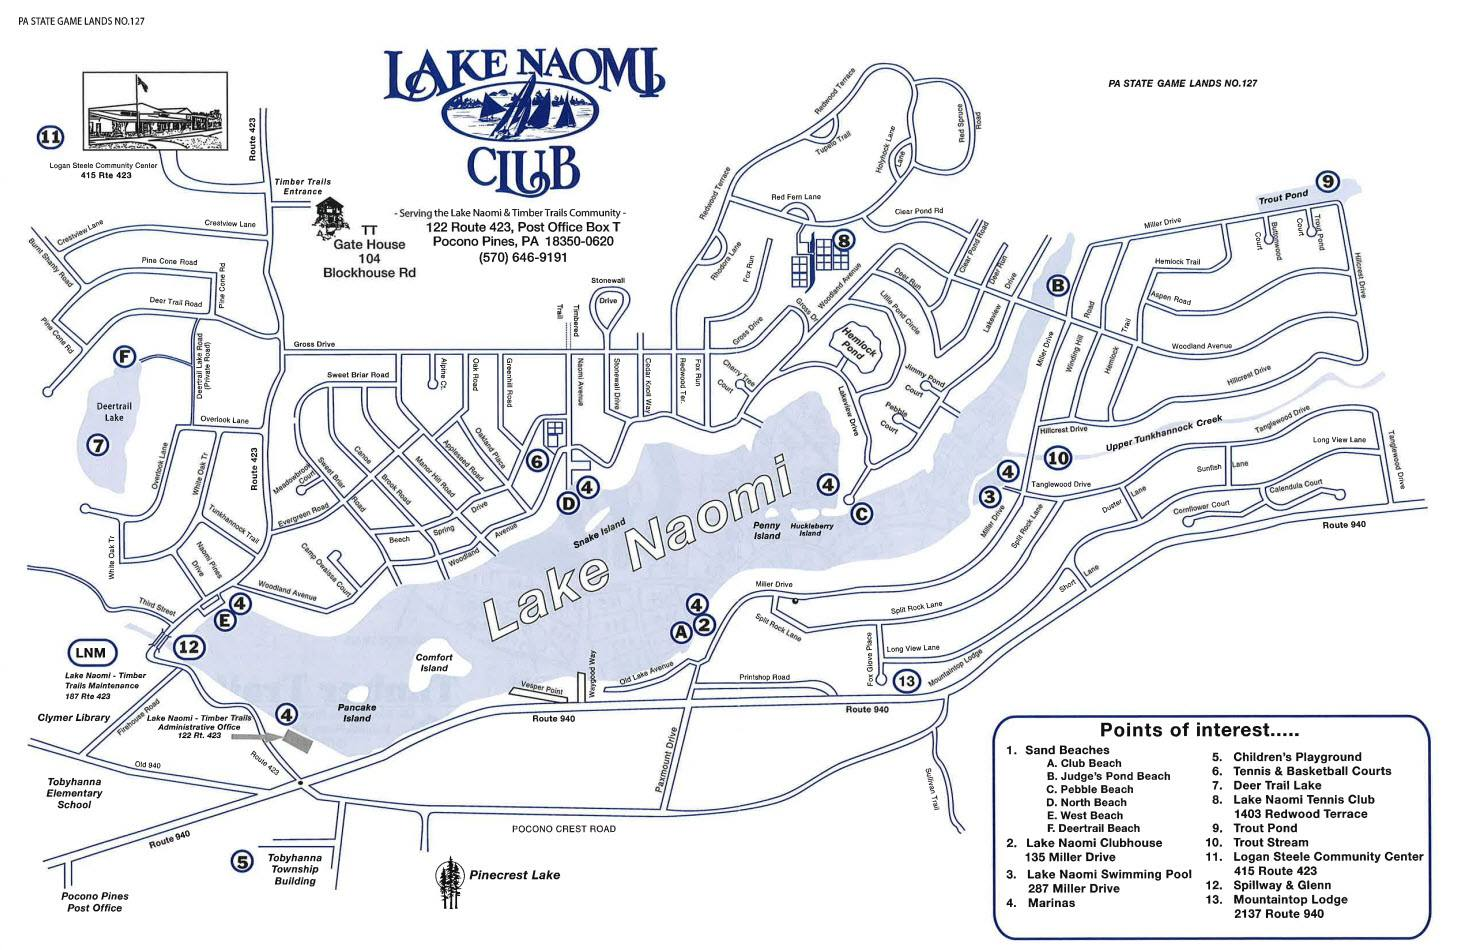 Lake Naomi Map - A map of Lake Naomi with the amenity locations listed